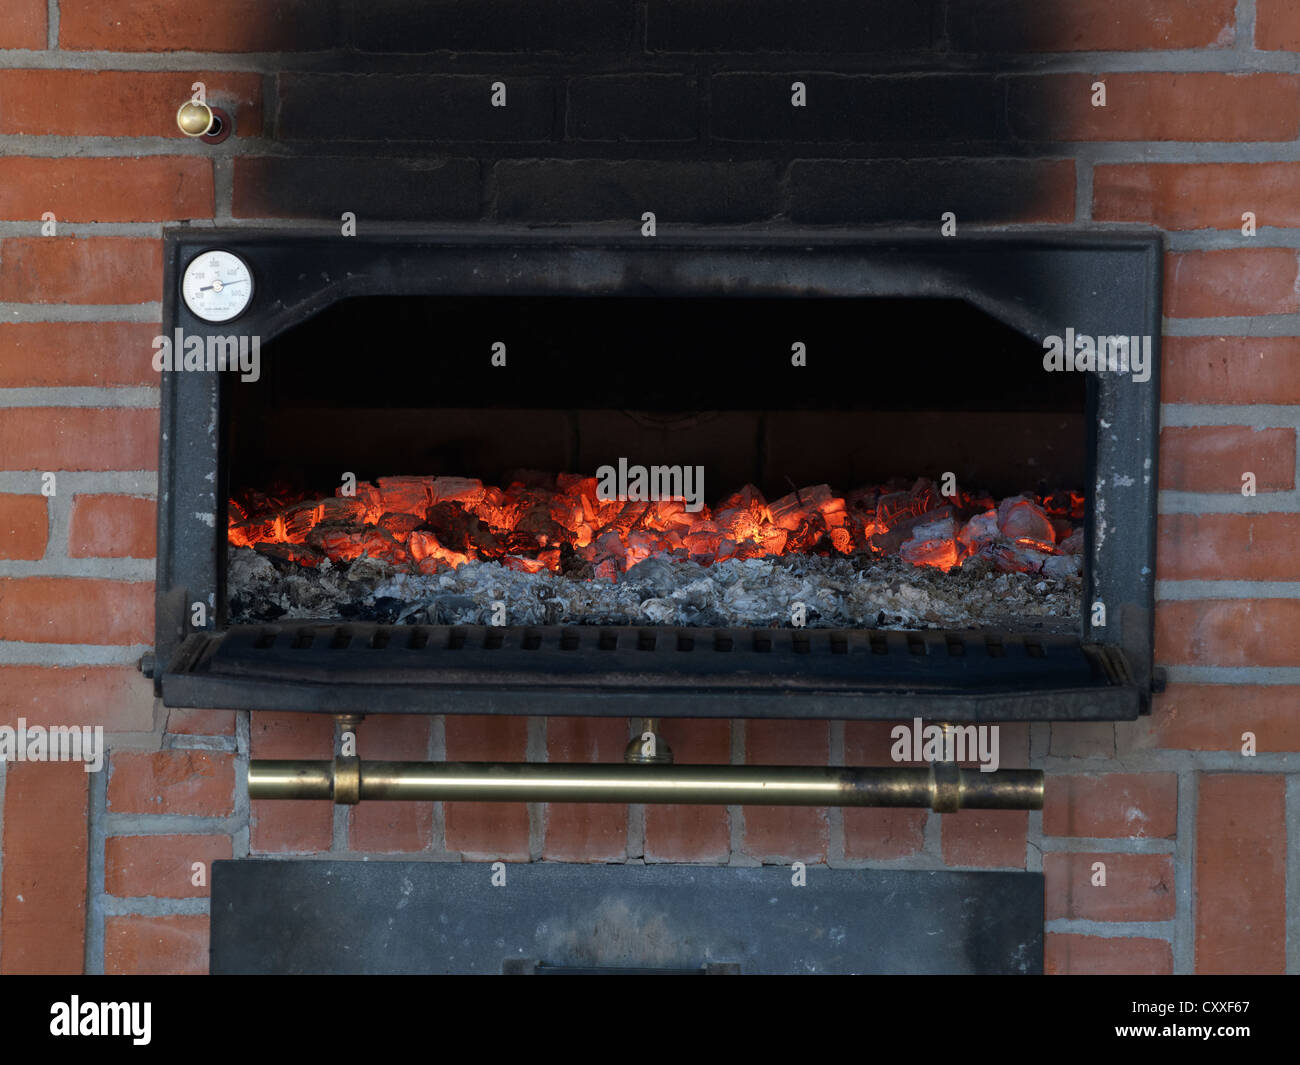 Coal Oven Stock Photos Amp Coal Oven Stock Images Alamy